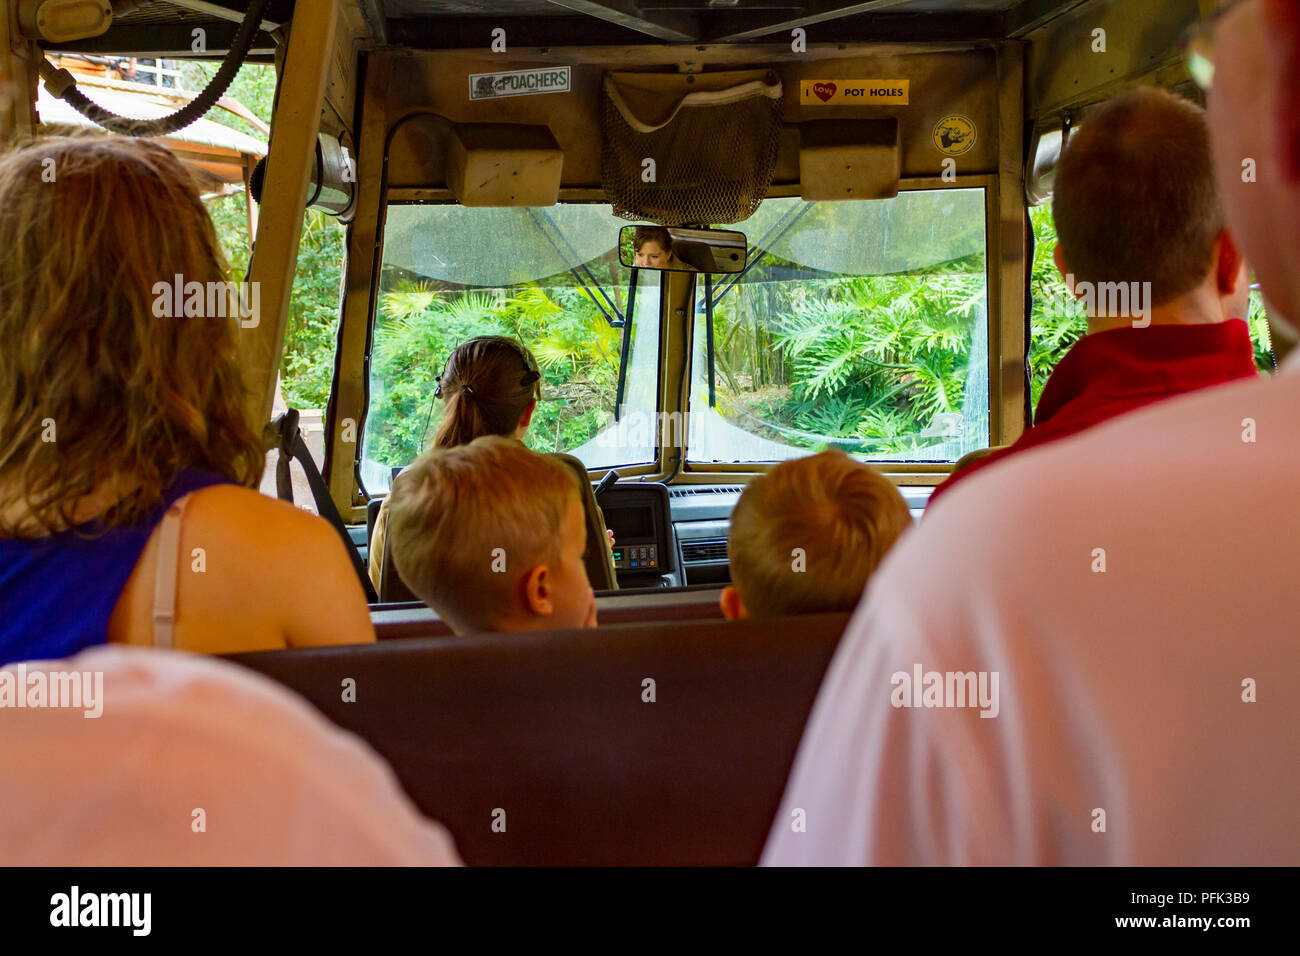 Kilimanjaro Safari ride in Disneys Animal Kingdom Theme Park, Walt Disney World, Orlando, Florida. - Stock Image